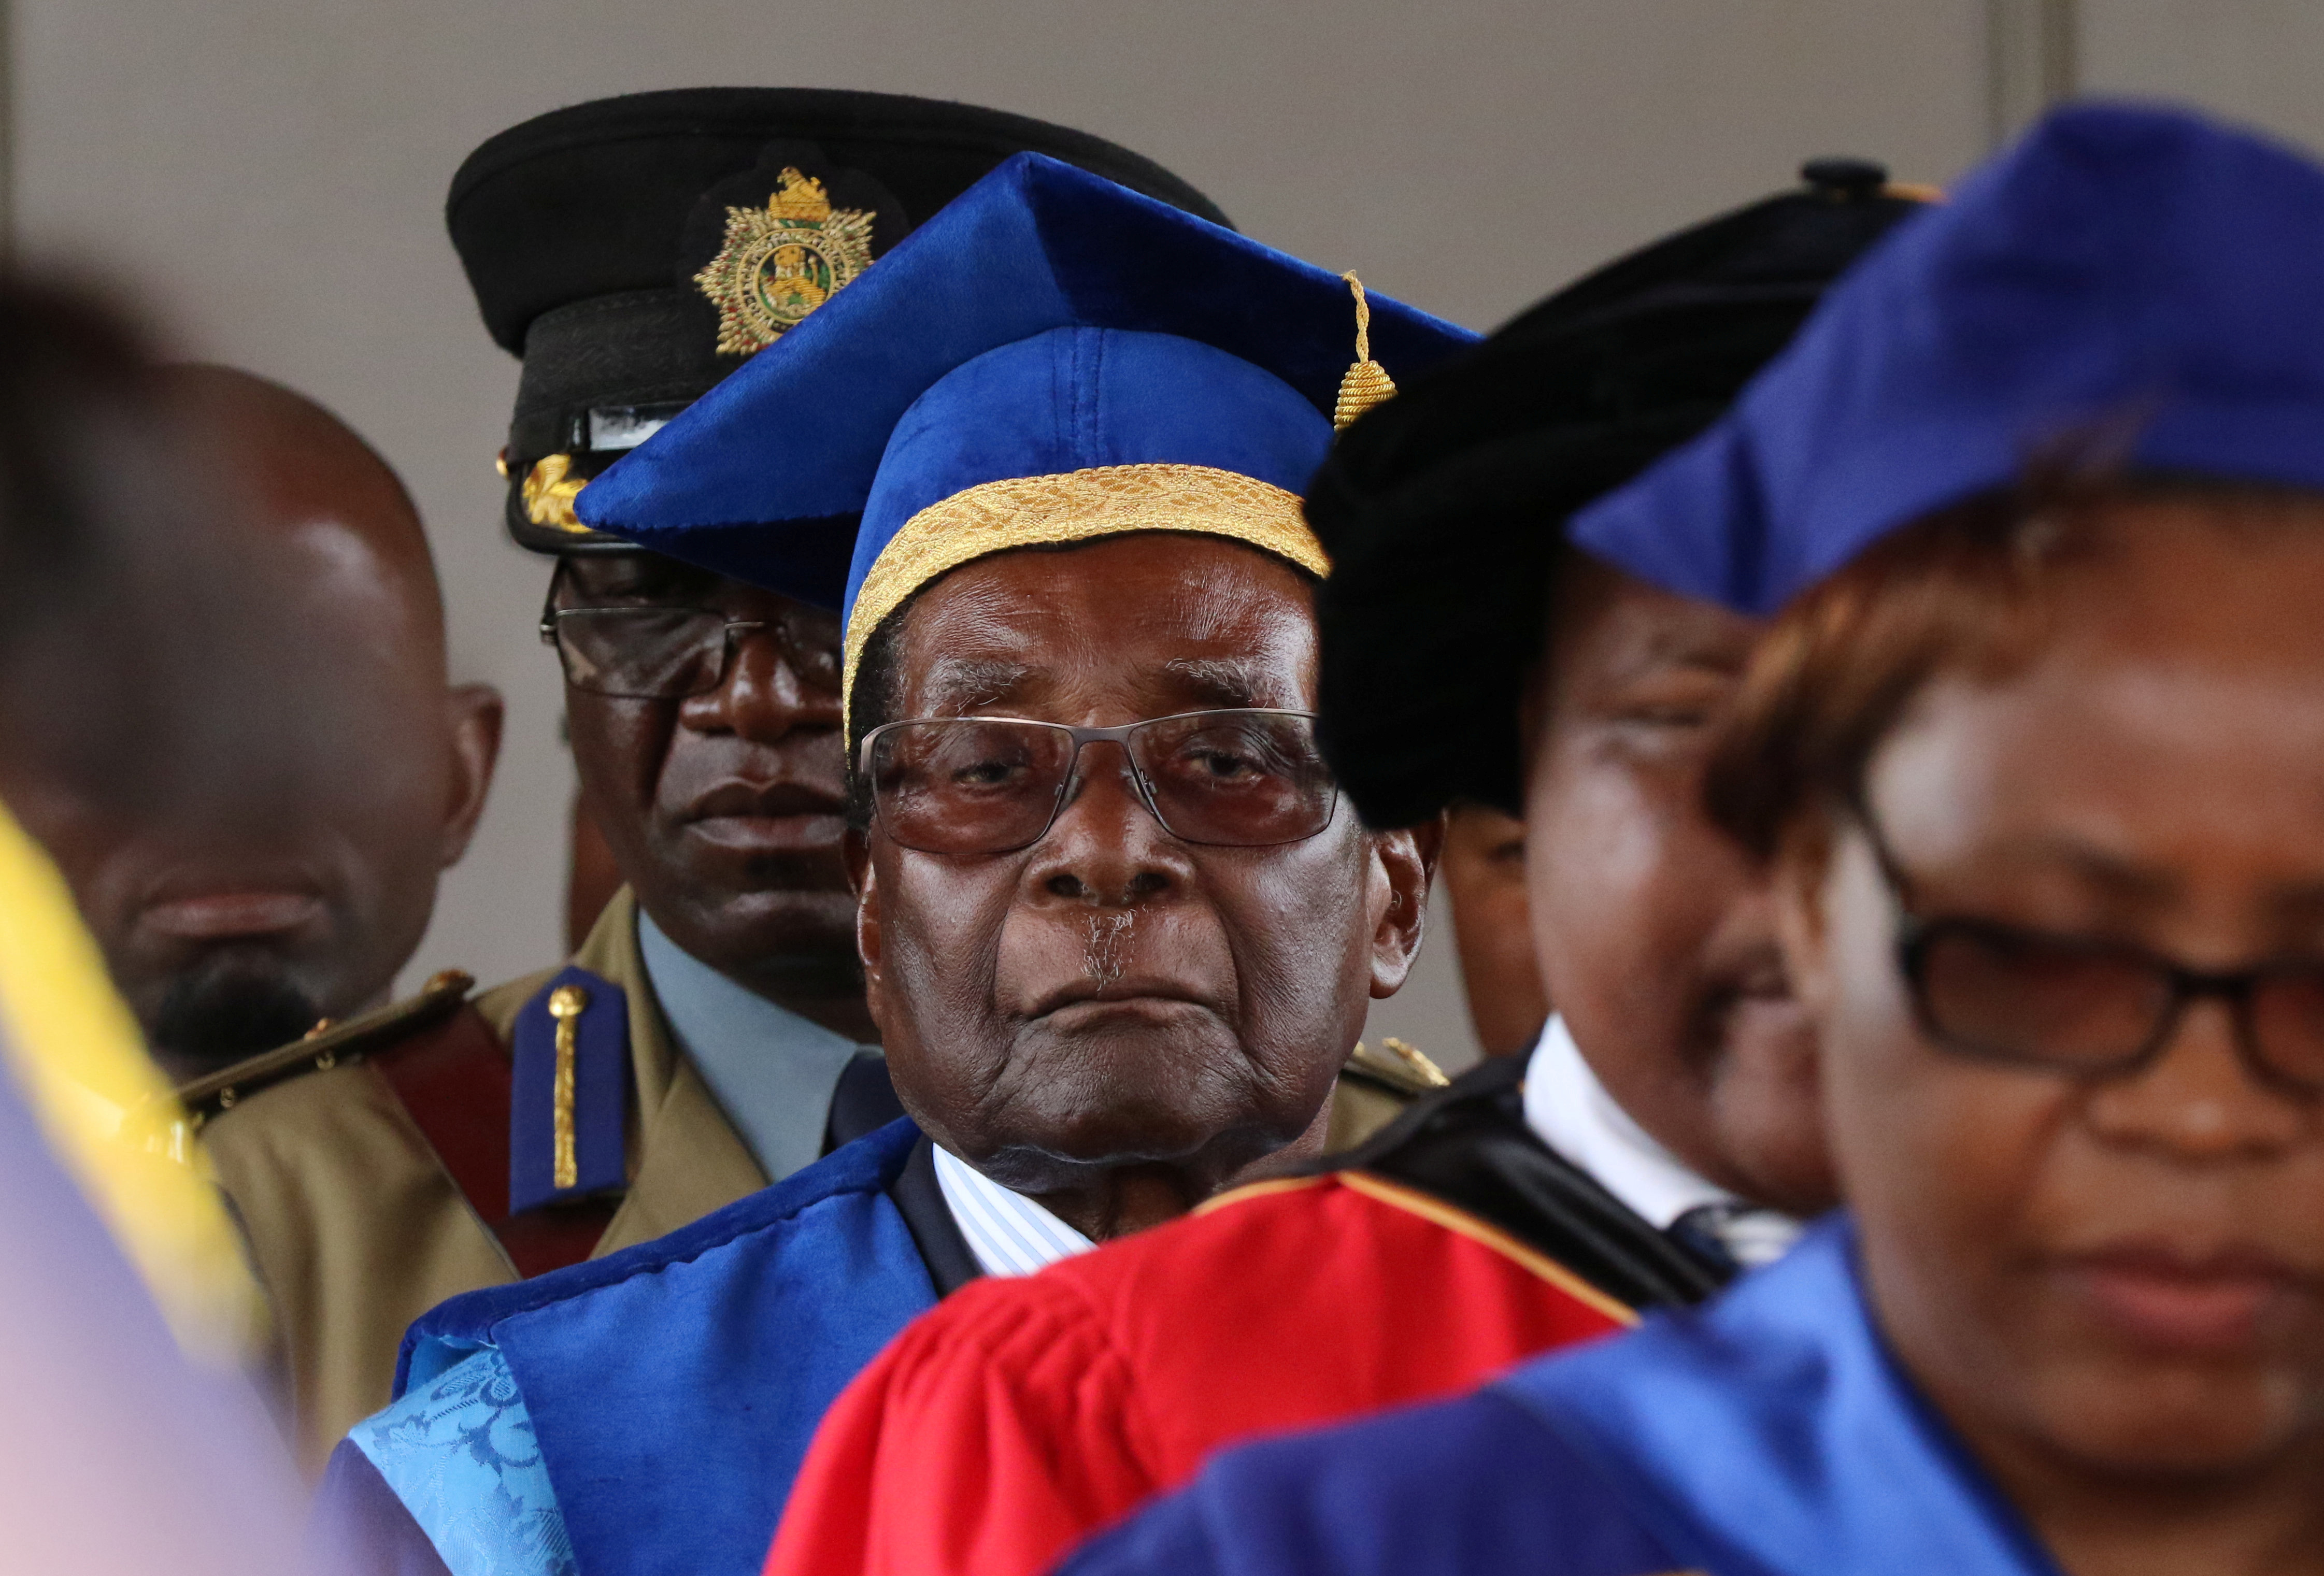 Africa in the news: Zimbabwe's political crisis, new US